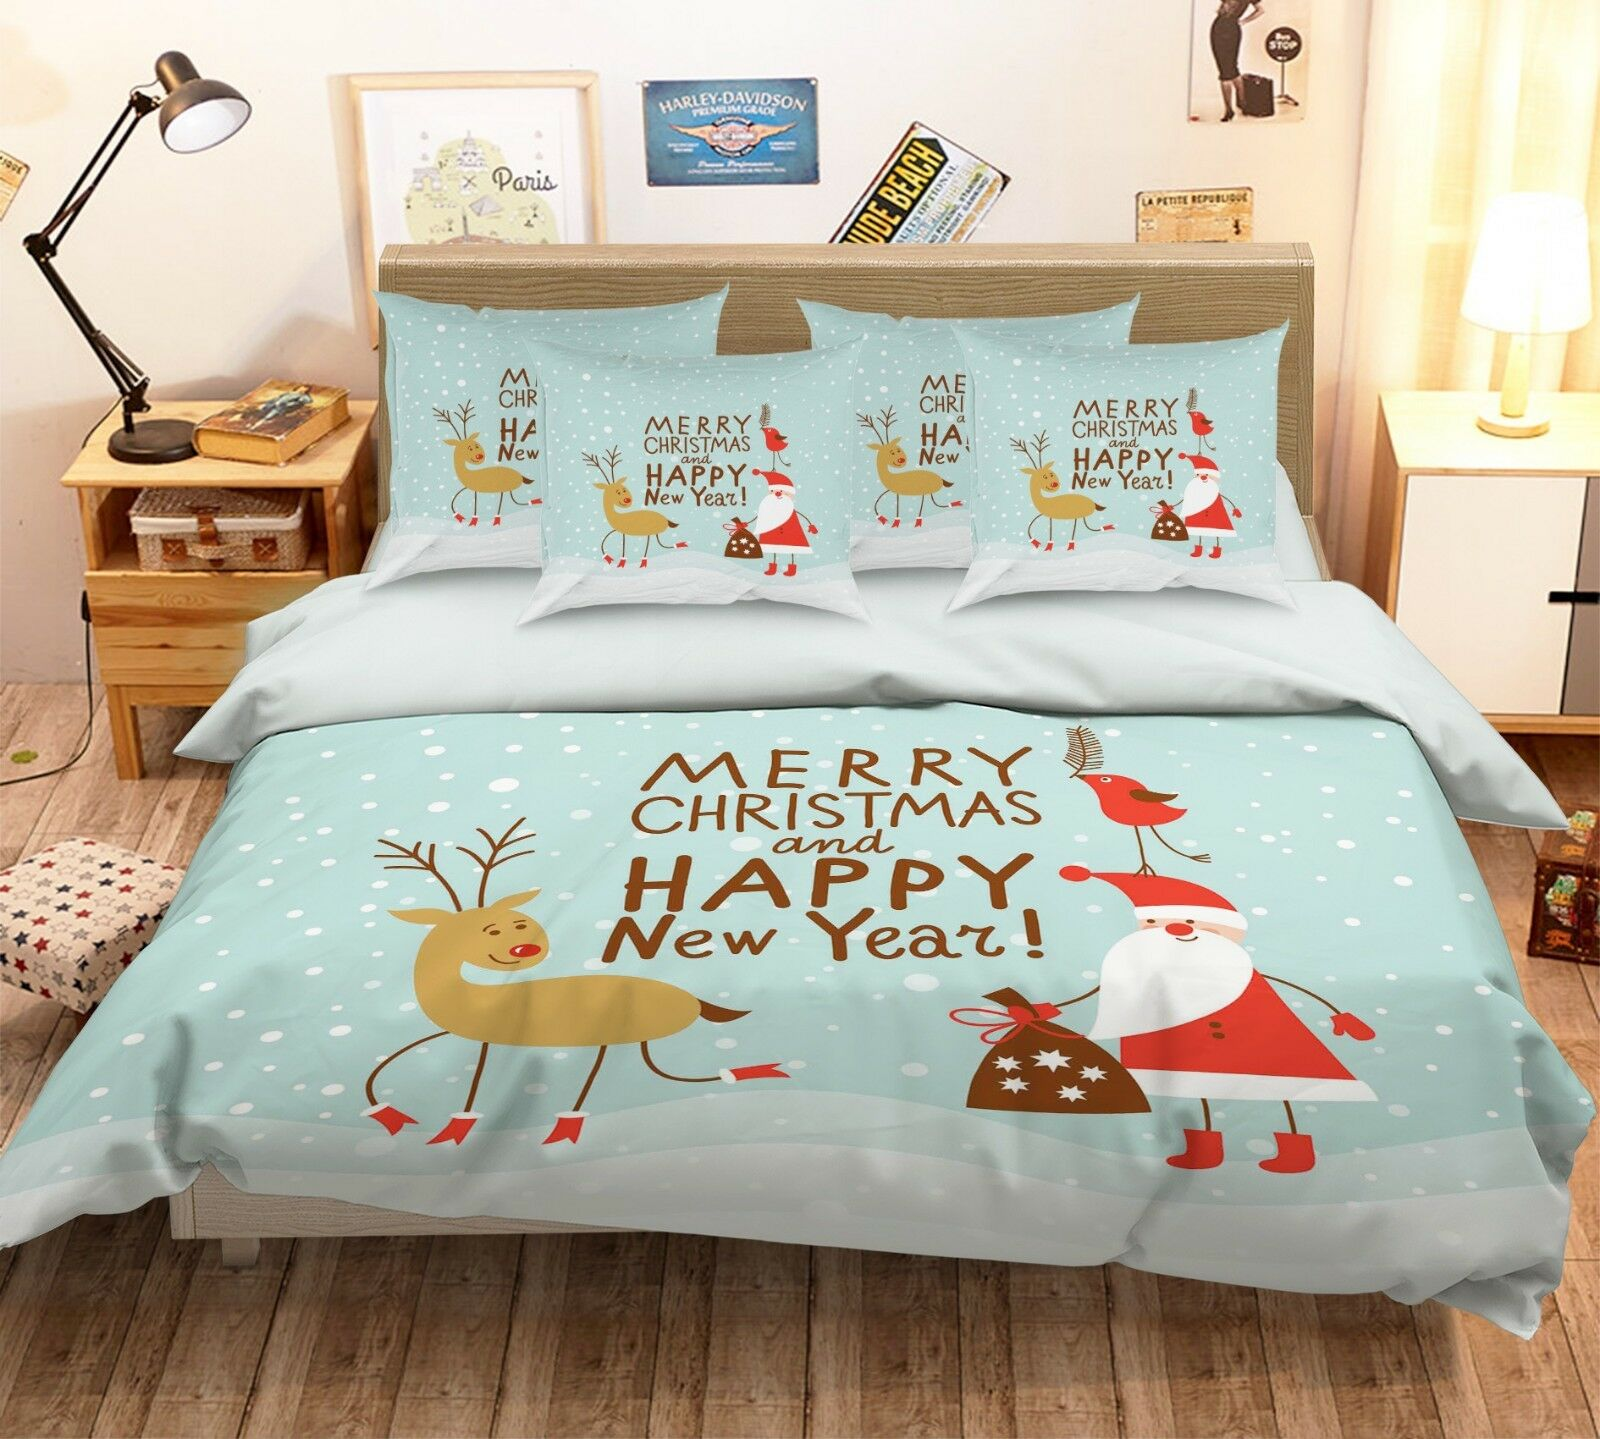 3D Santa Claus Snowing 2 Bed Pillowcases Quilt Duvet Single Queen King US Summer